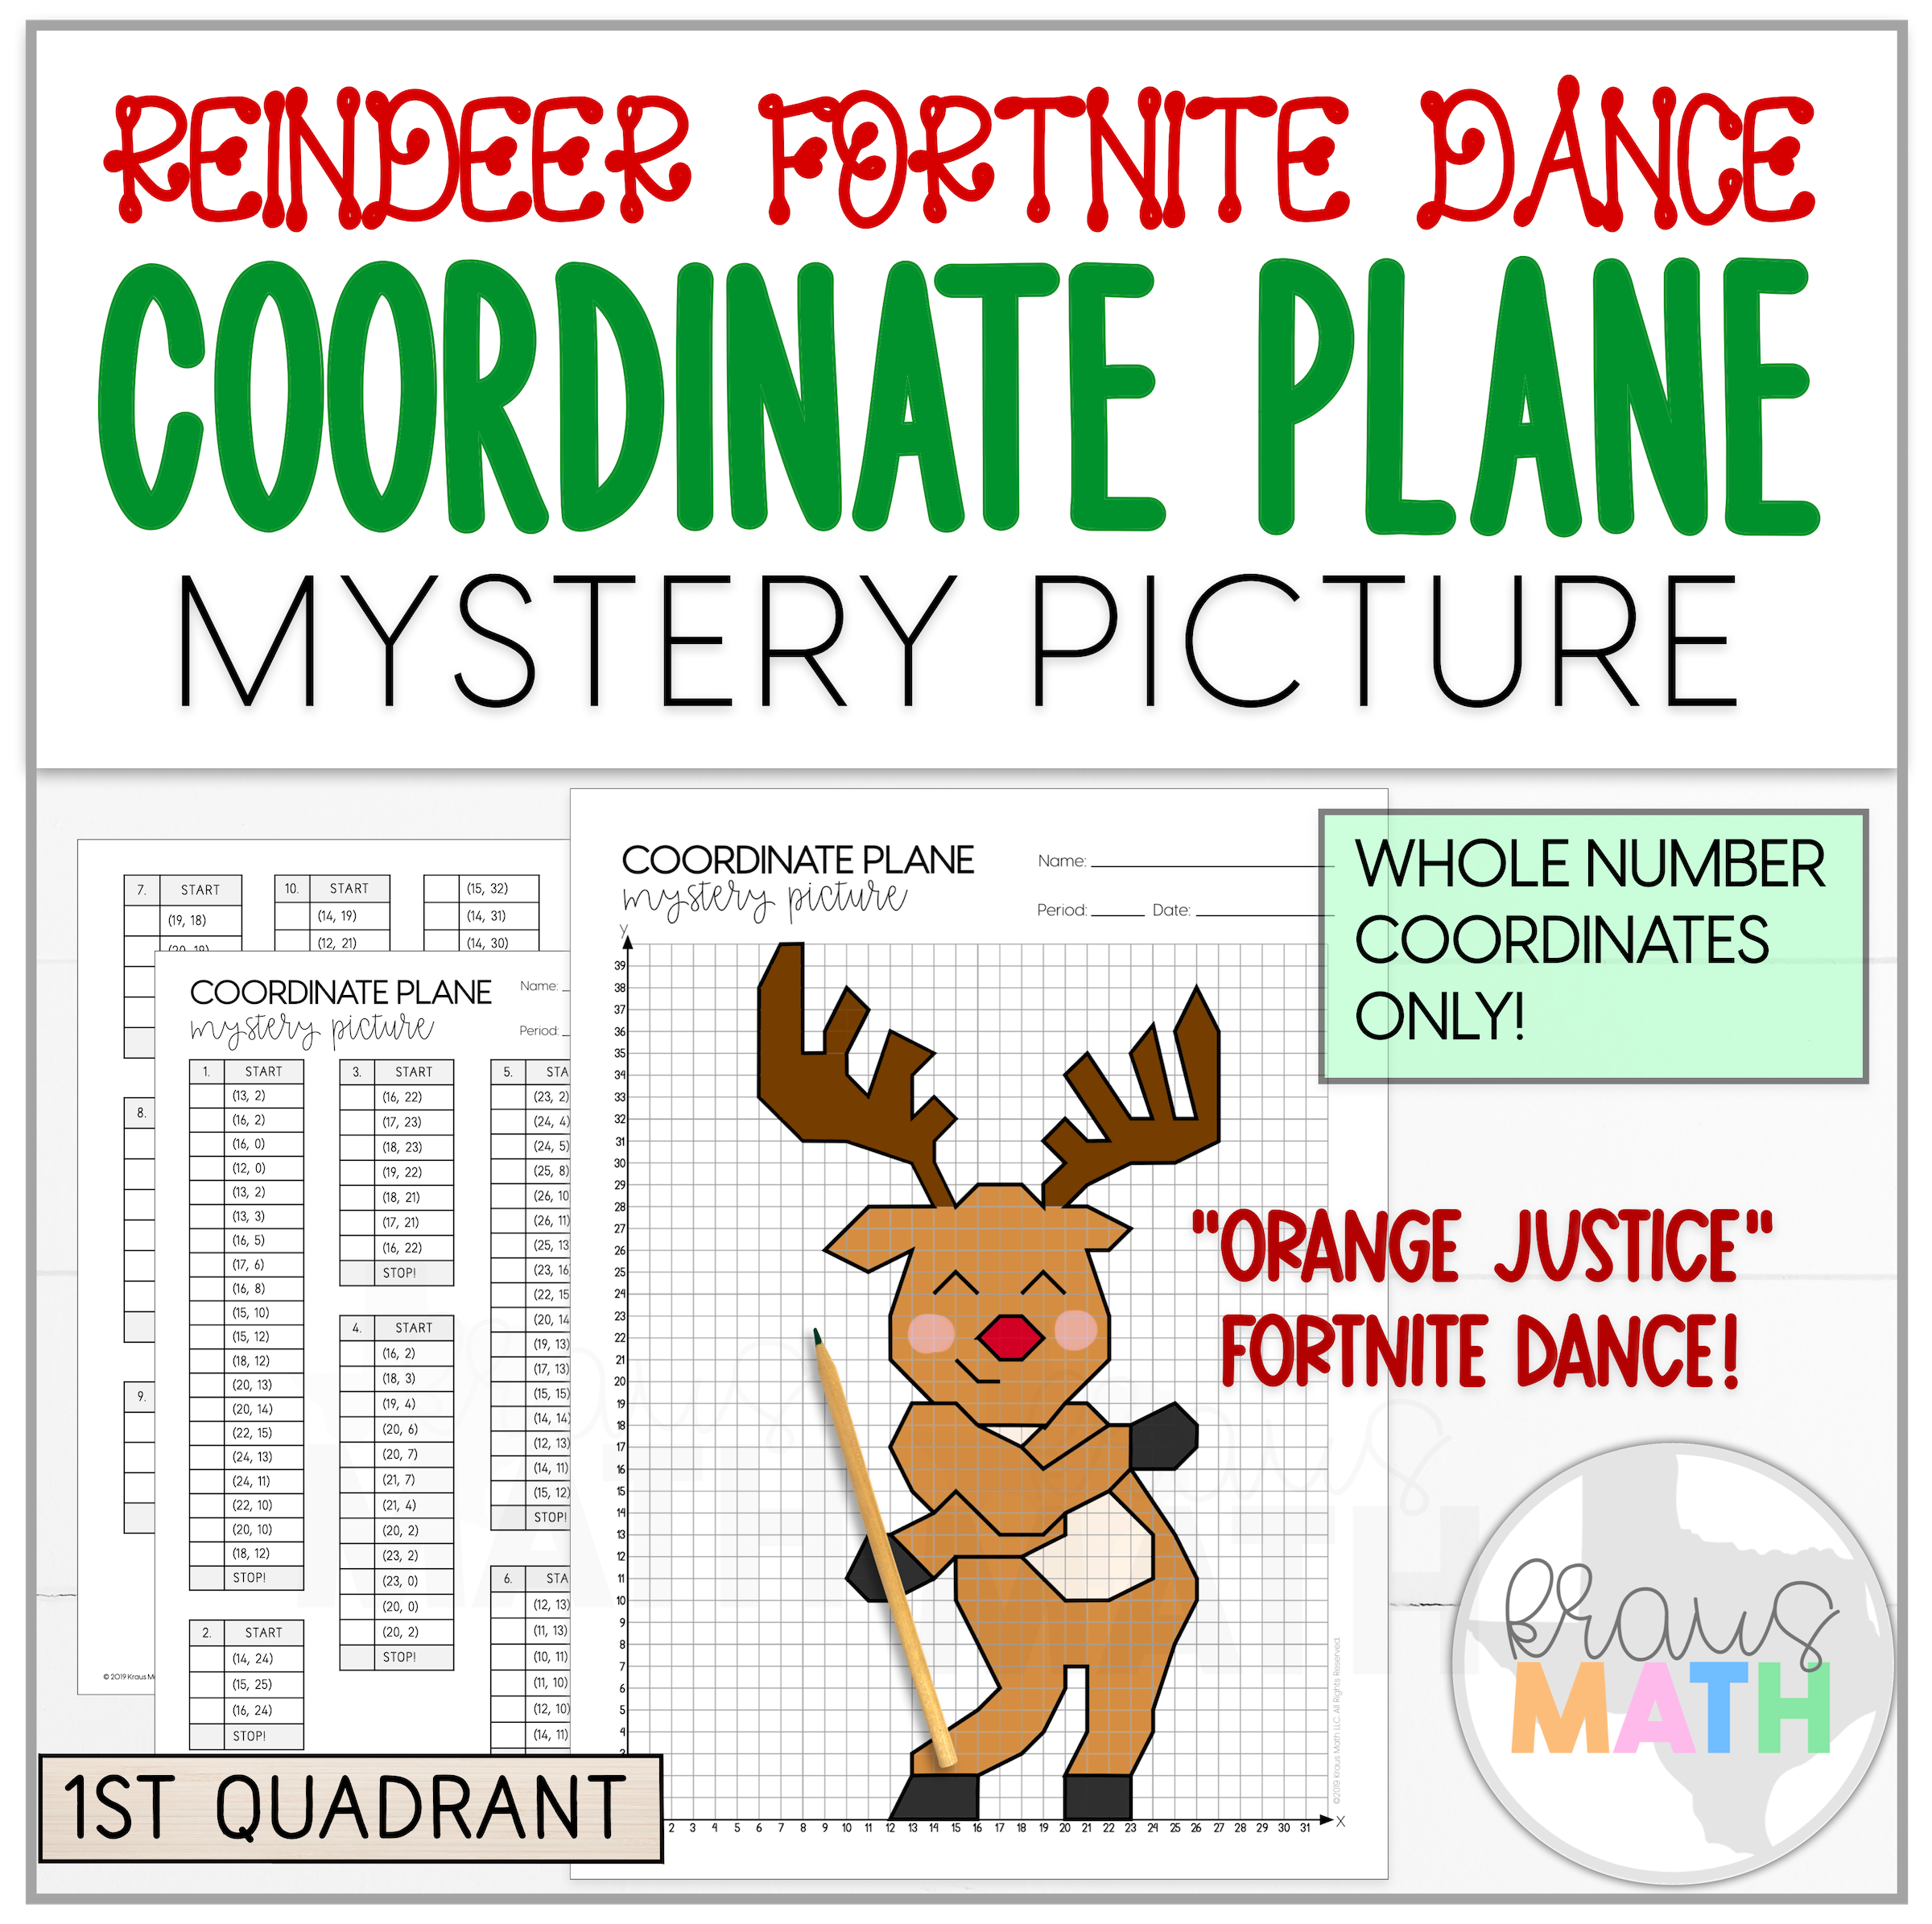 Reindeer Fortnite Orange Justice Dance Coordinate Plane